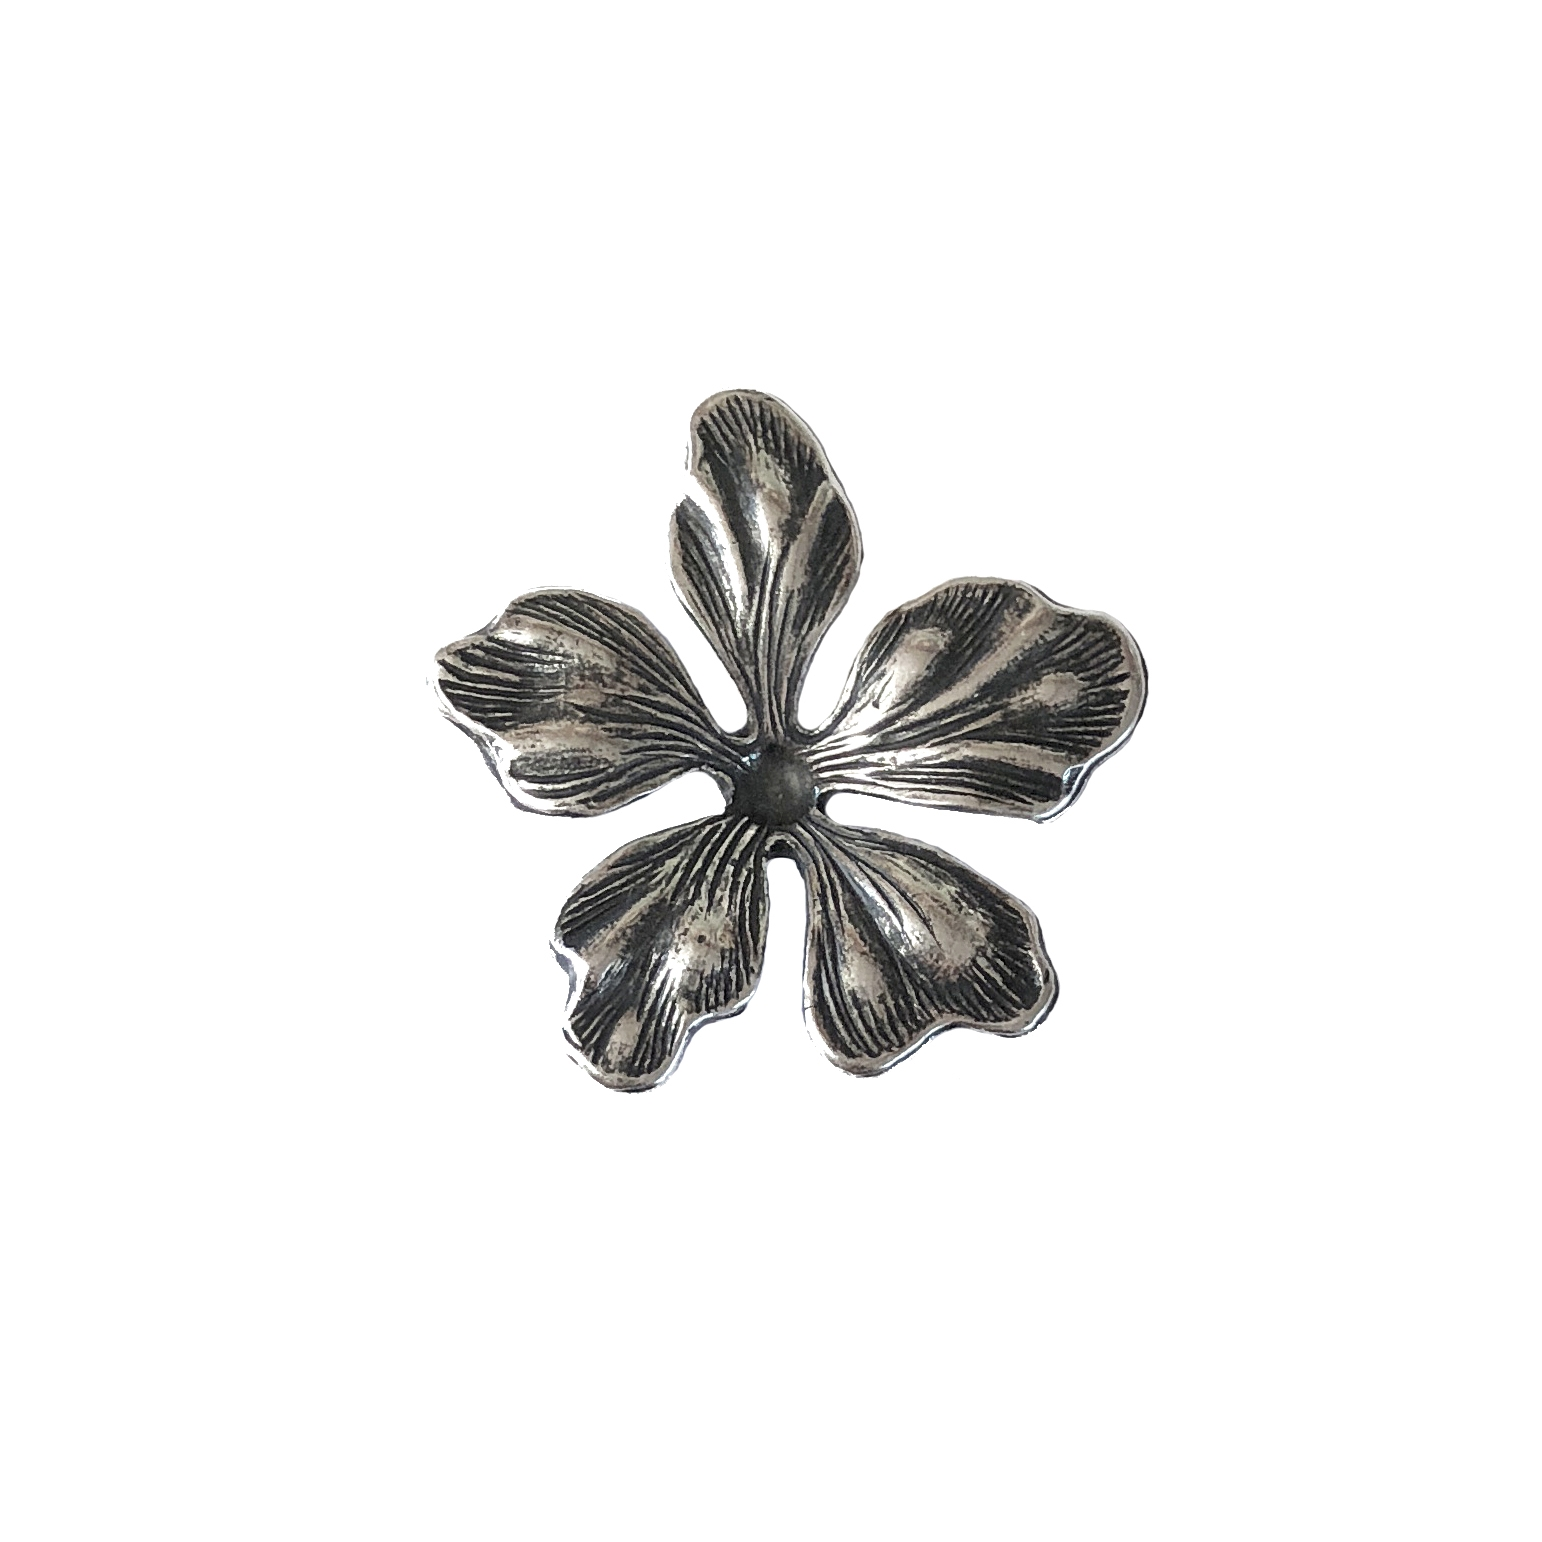 dogwood flower, 0697, silverware silverplate, flowers, 23mm, brass plated flower, dimensional flower, Bsue Boutiques, jewelry making, jewelry supplies